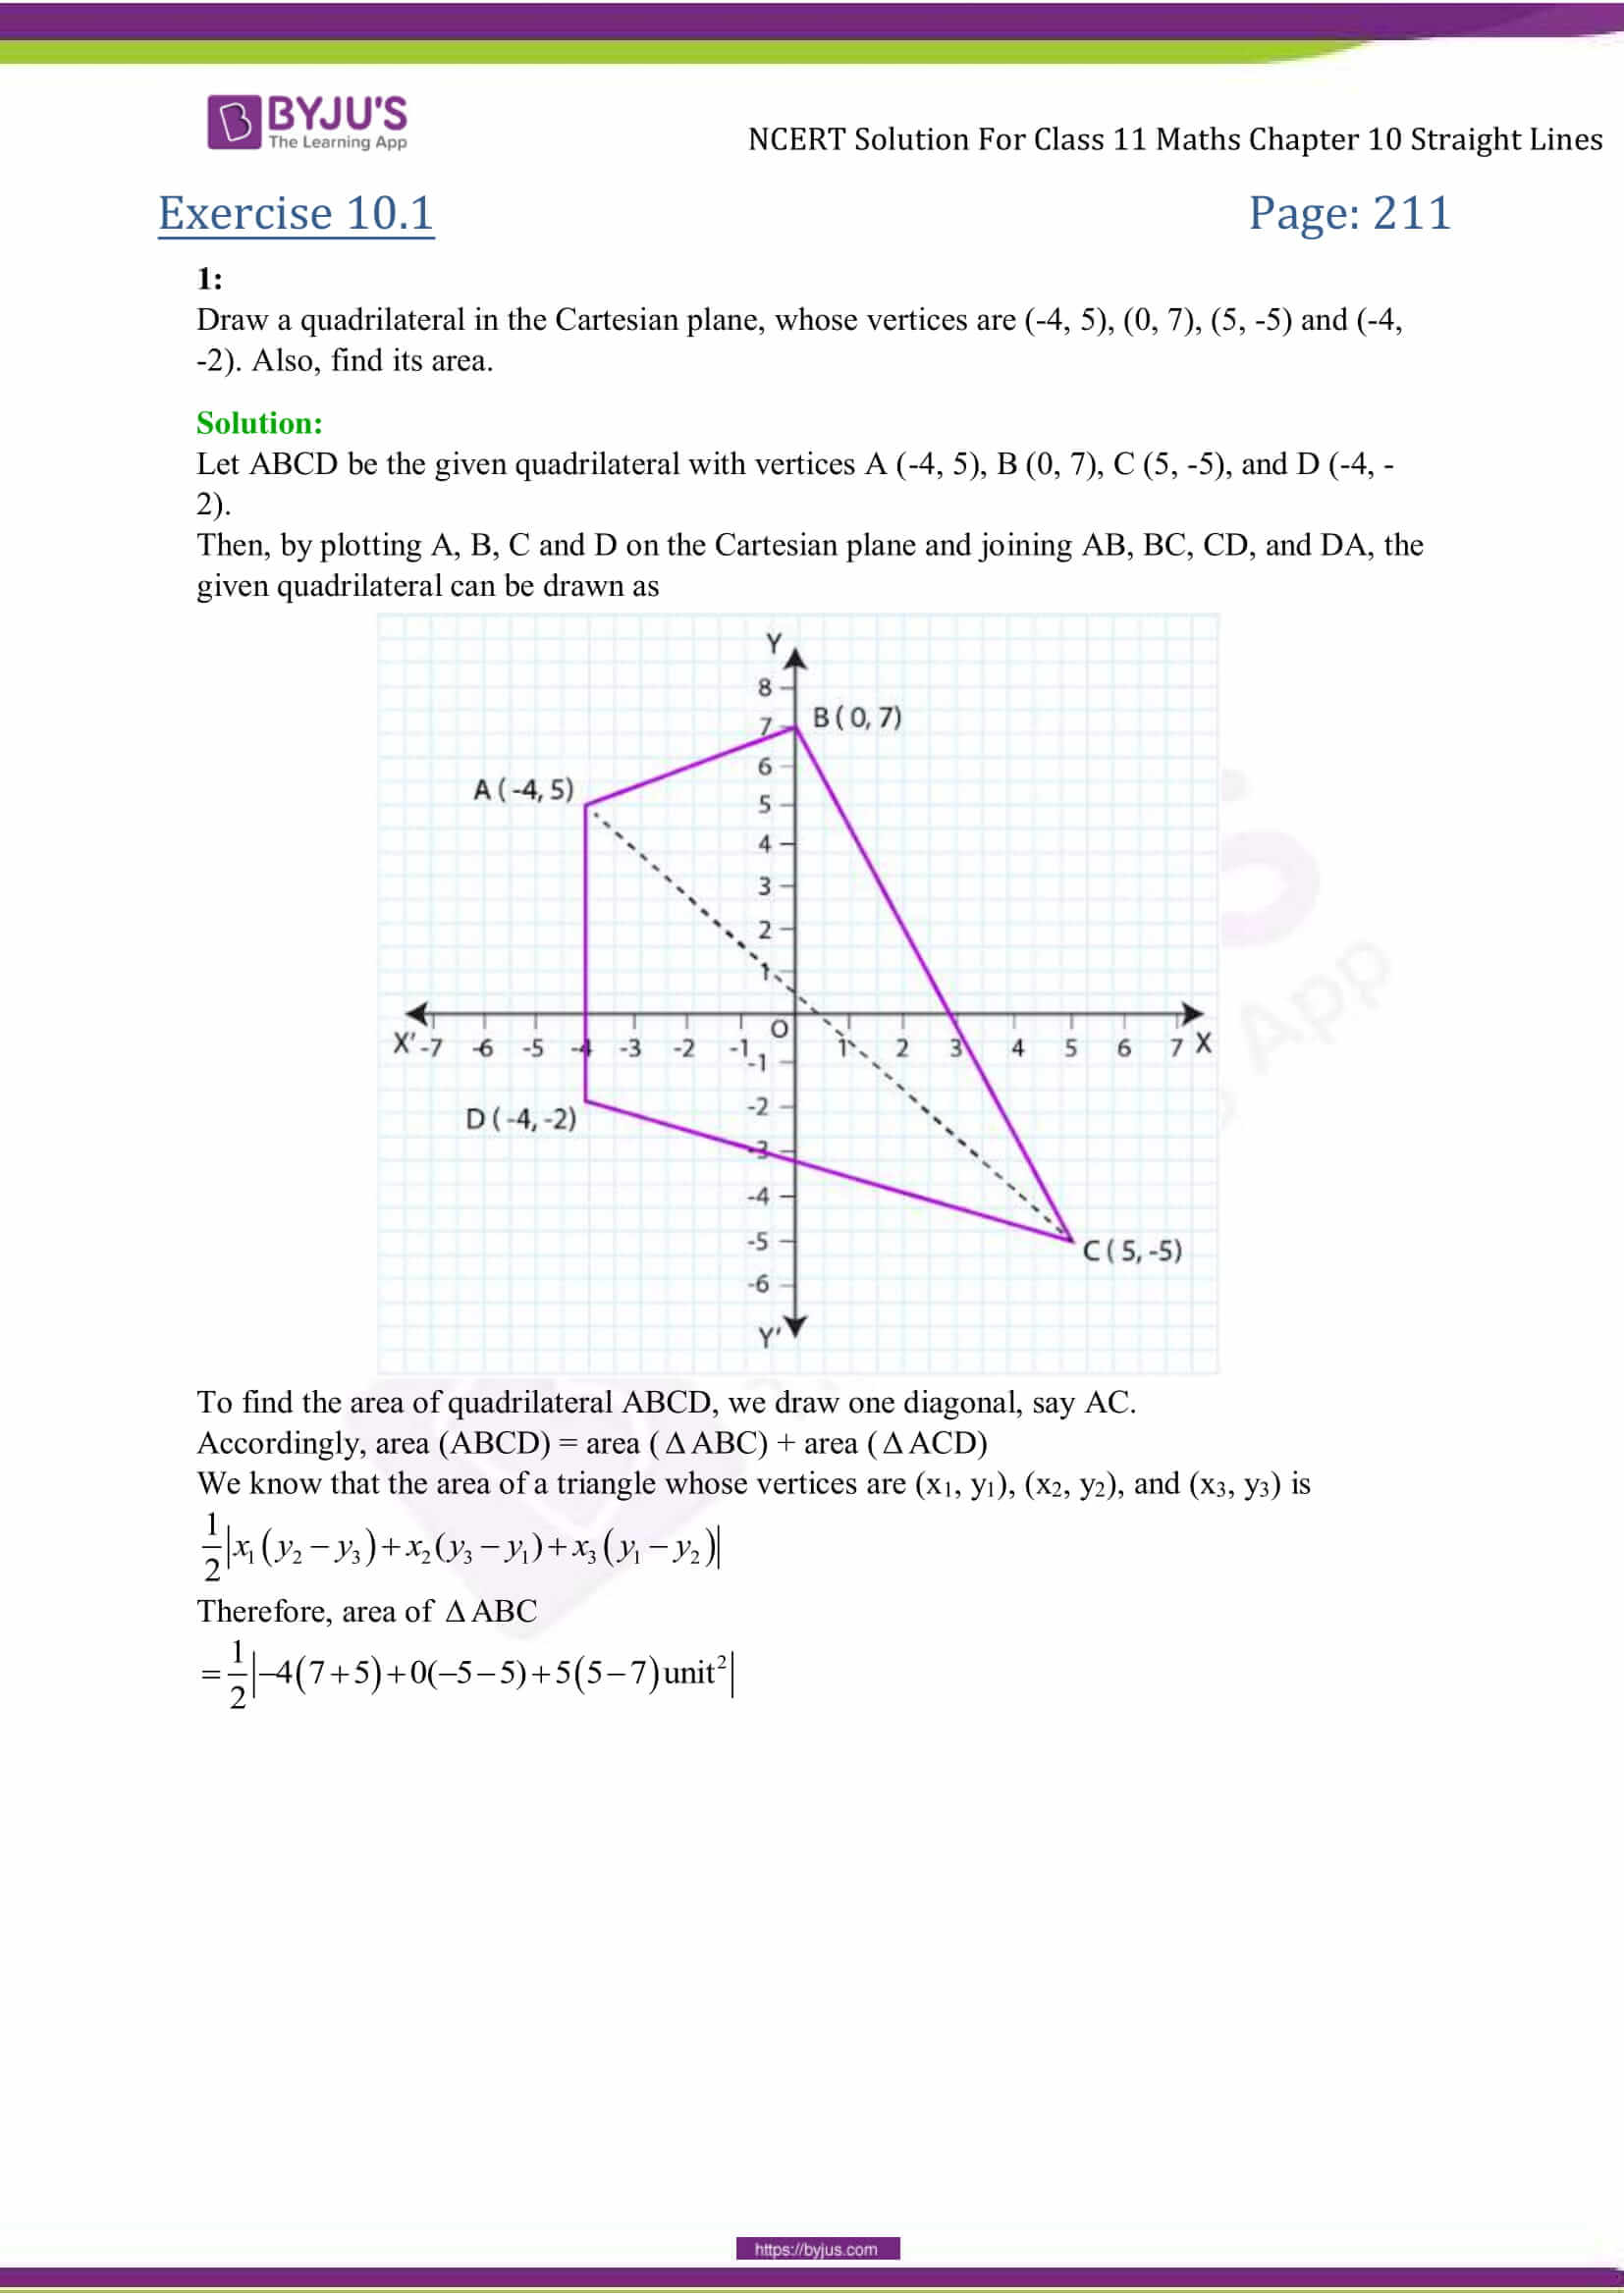 NCERT Solutions Class 11 Maths Chapter 10 Straight Lines - BYJU'S